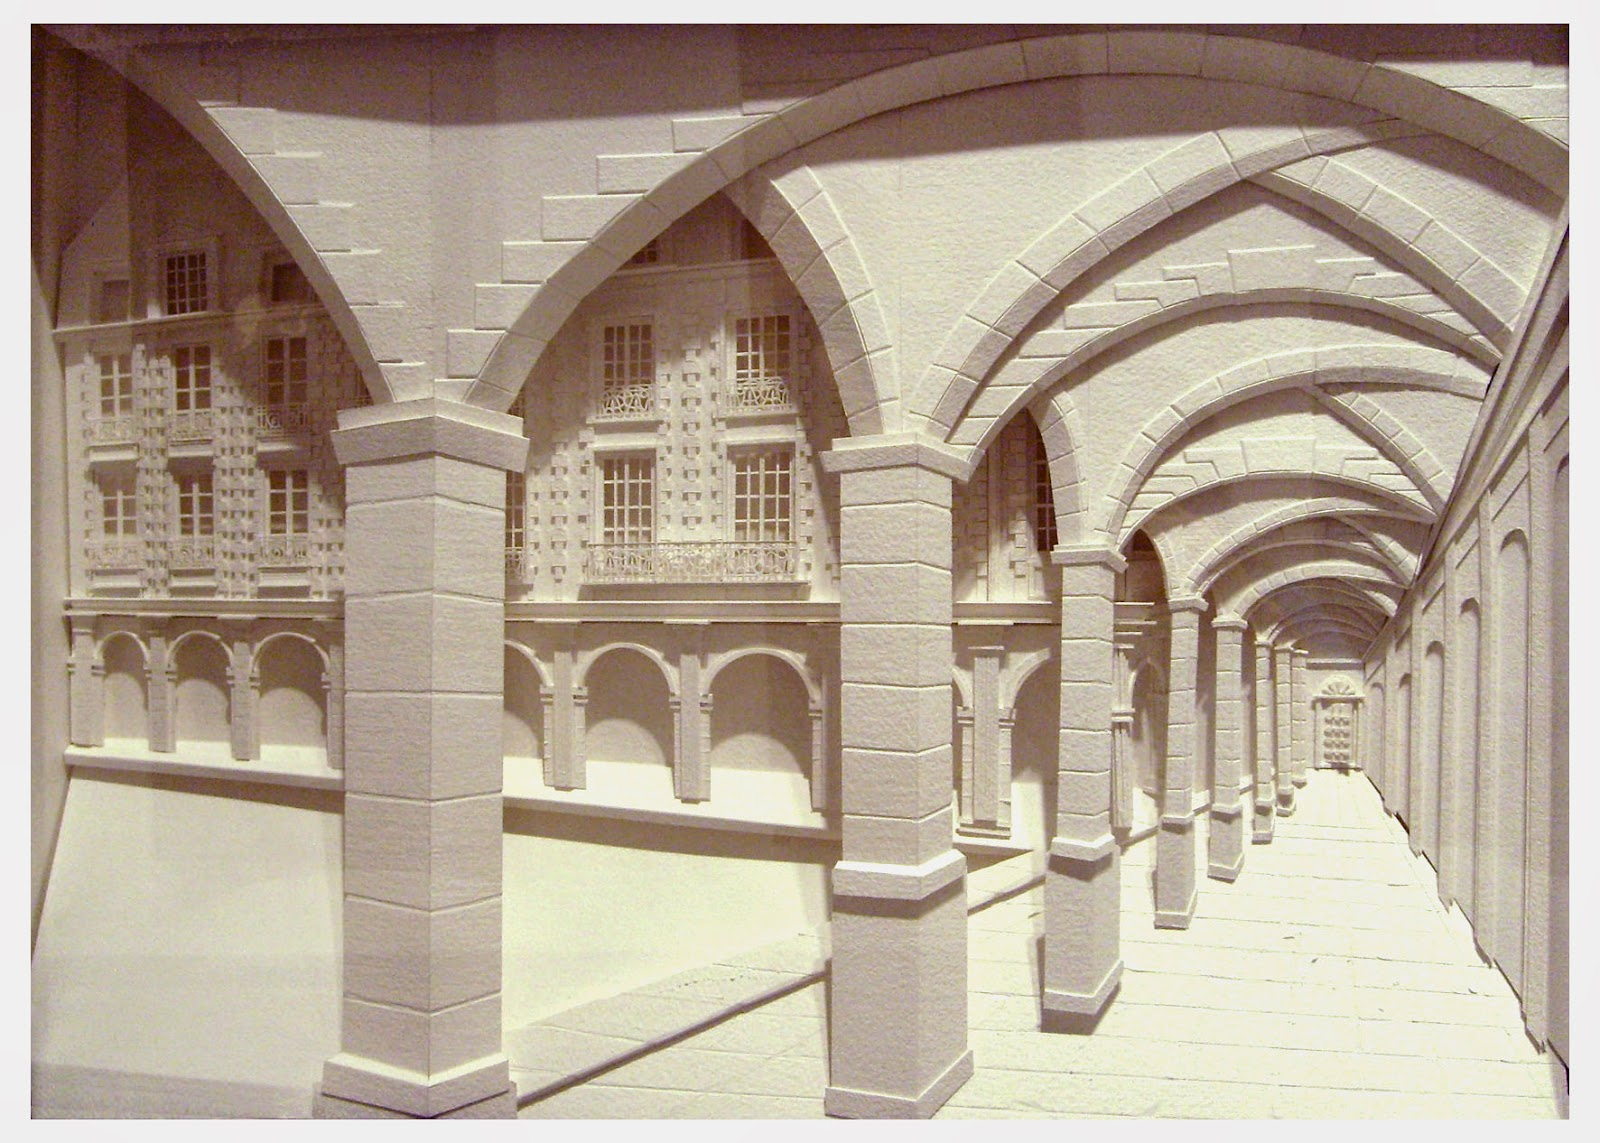 08-Christina-Lihan-3D-Architectural-Paper-Sculptures-www-designstack-co